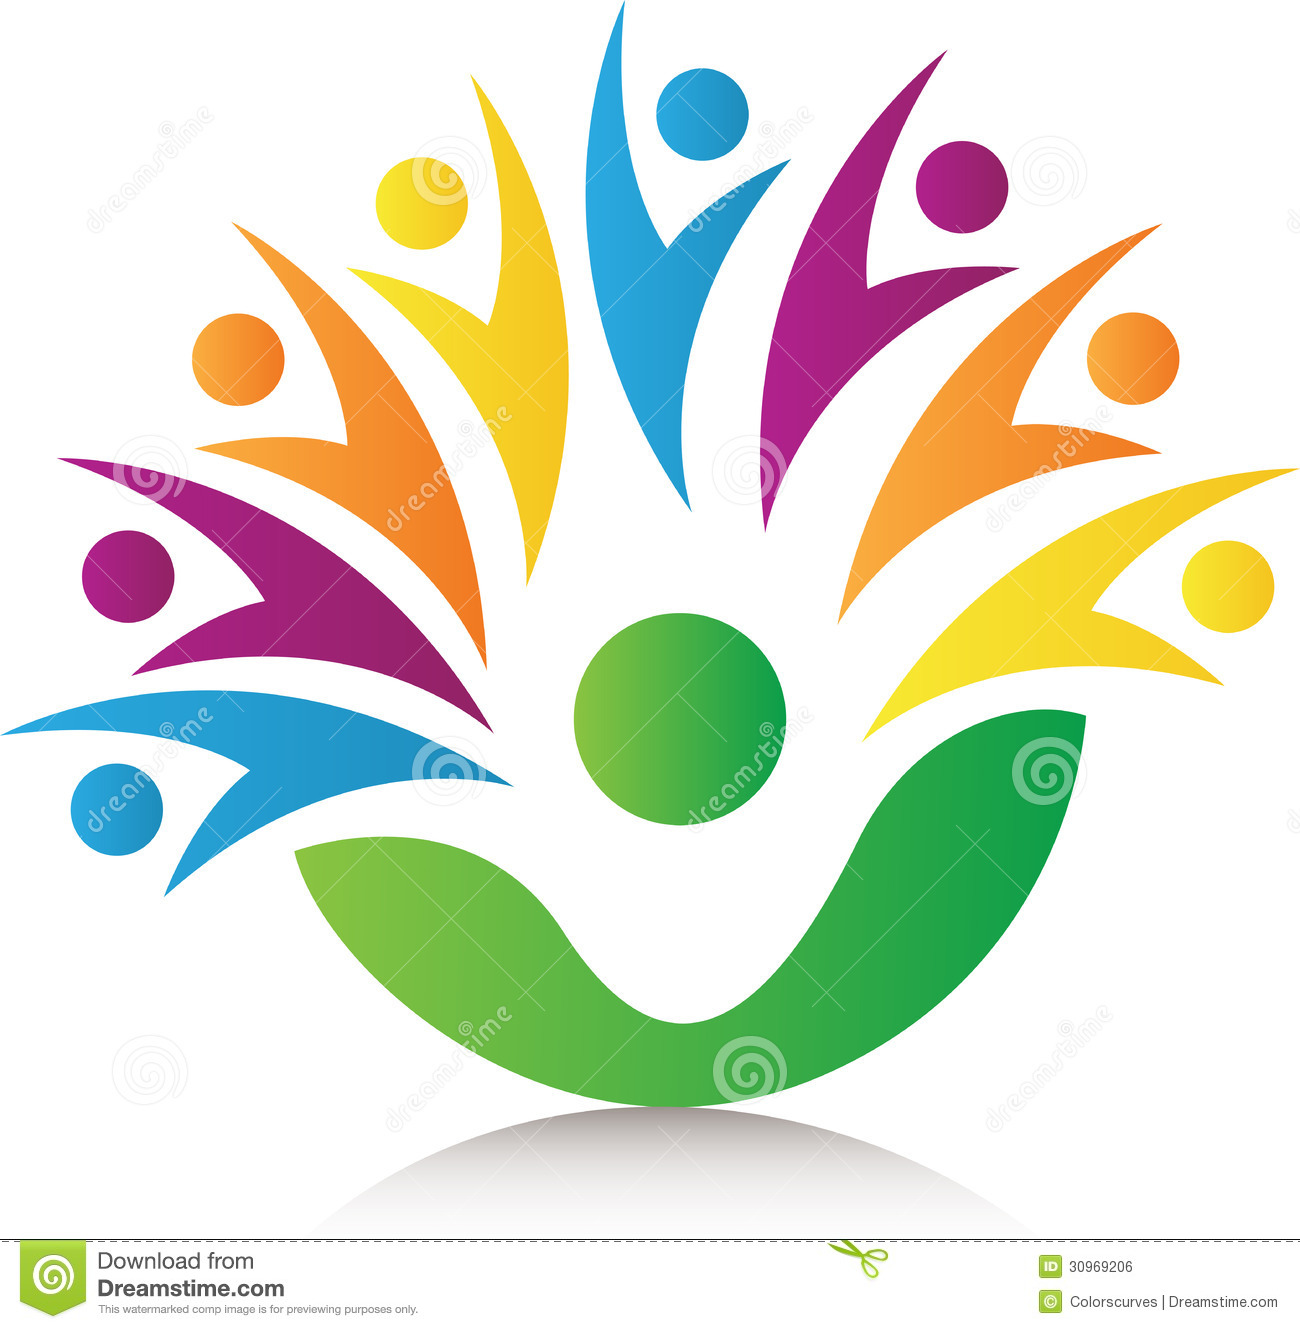 People Together Logo Royalty Free Stock Image - Image: 30969206